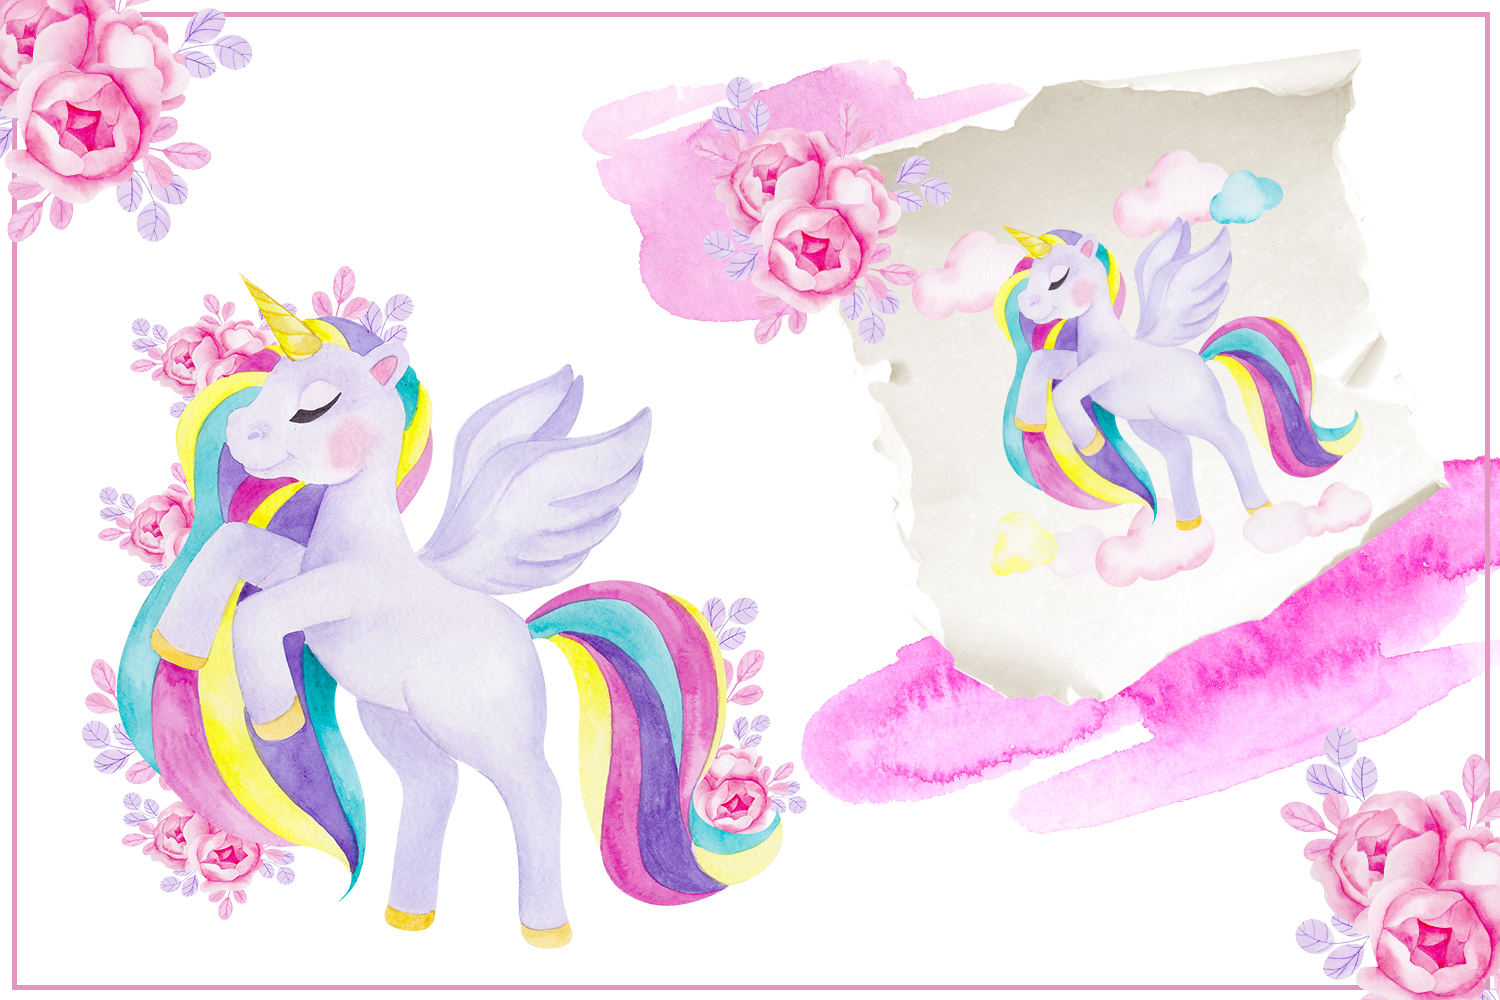 Cute unicorn. Illustrations and alphabet example image 3